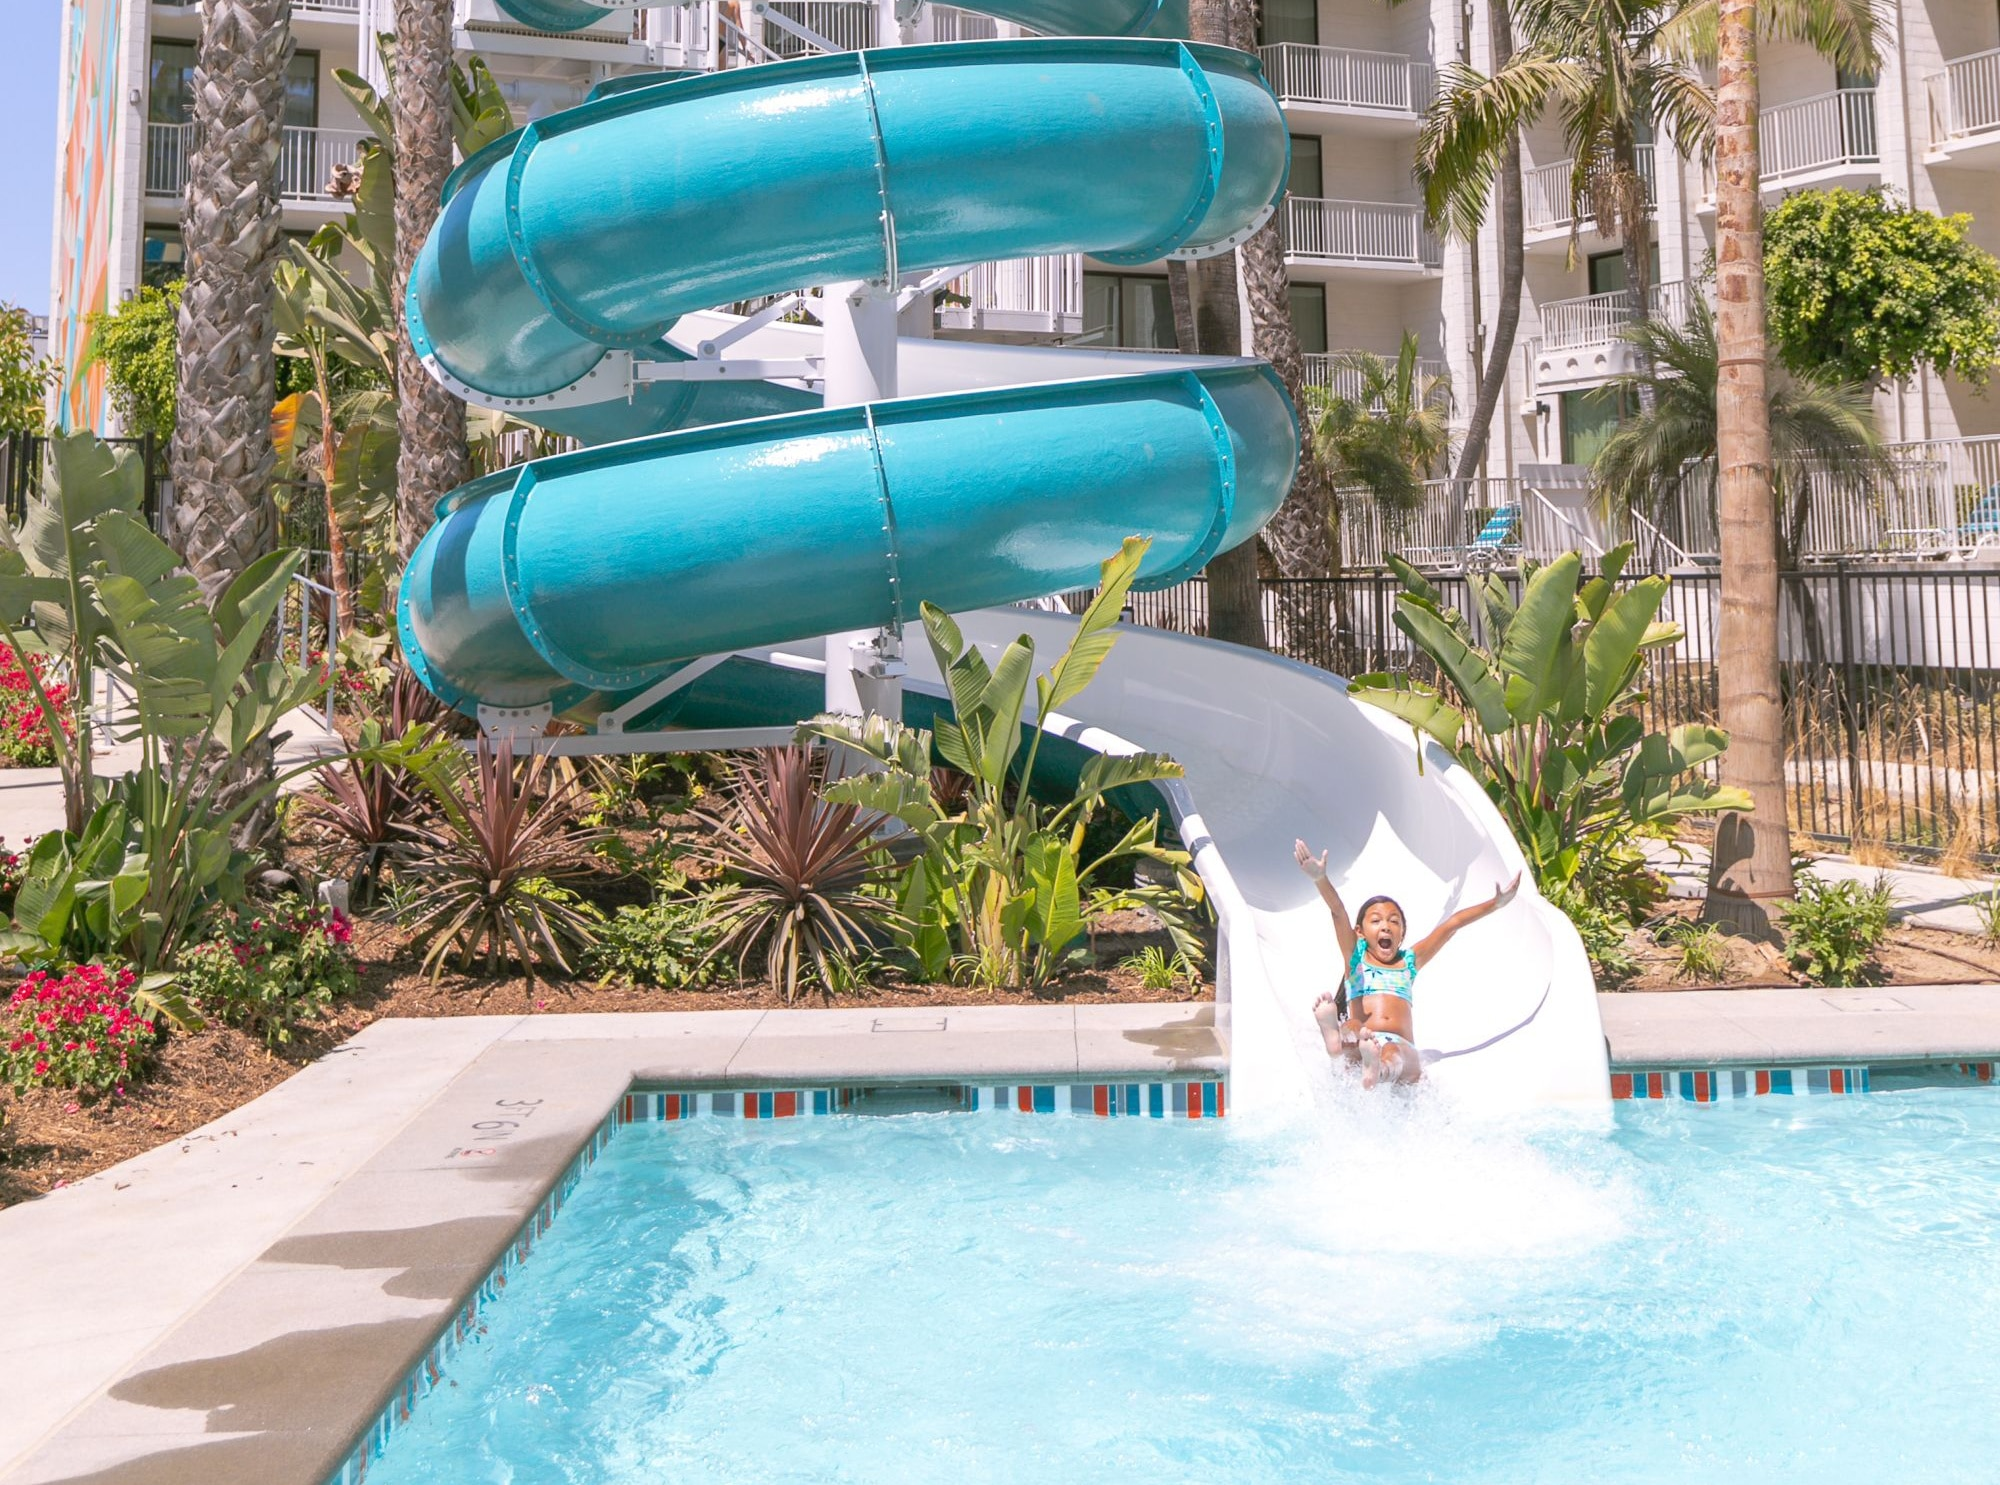 A little girl rides down the water slide into the swimming pool.